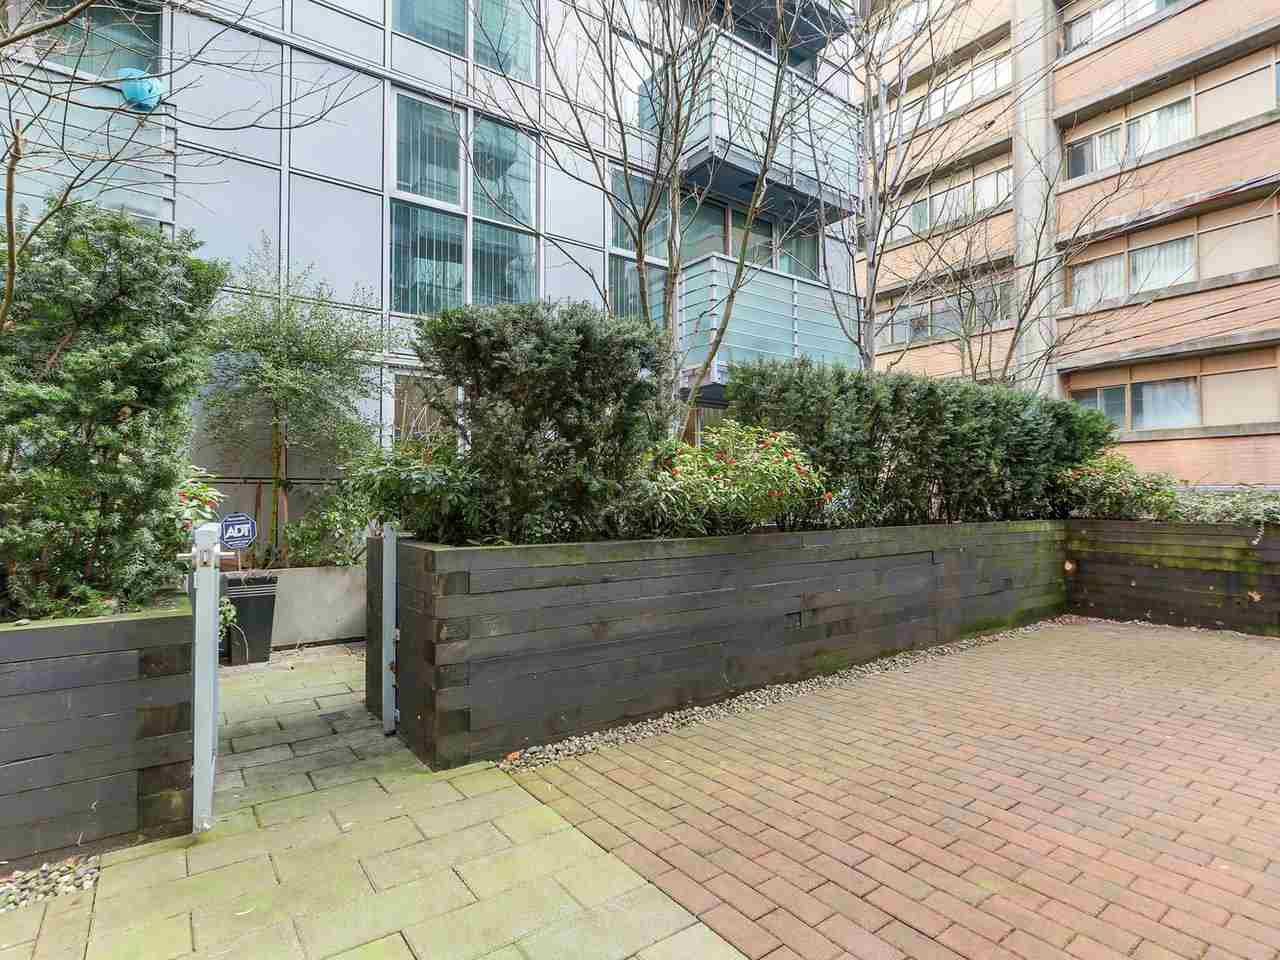 Photo 16: Photos: 217 168 POWELL Street in Vancouver: Downtown VE Condo for sale (Vancouver East)  : MLS®# R2386644